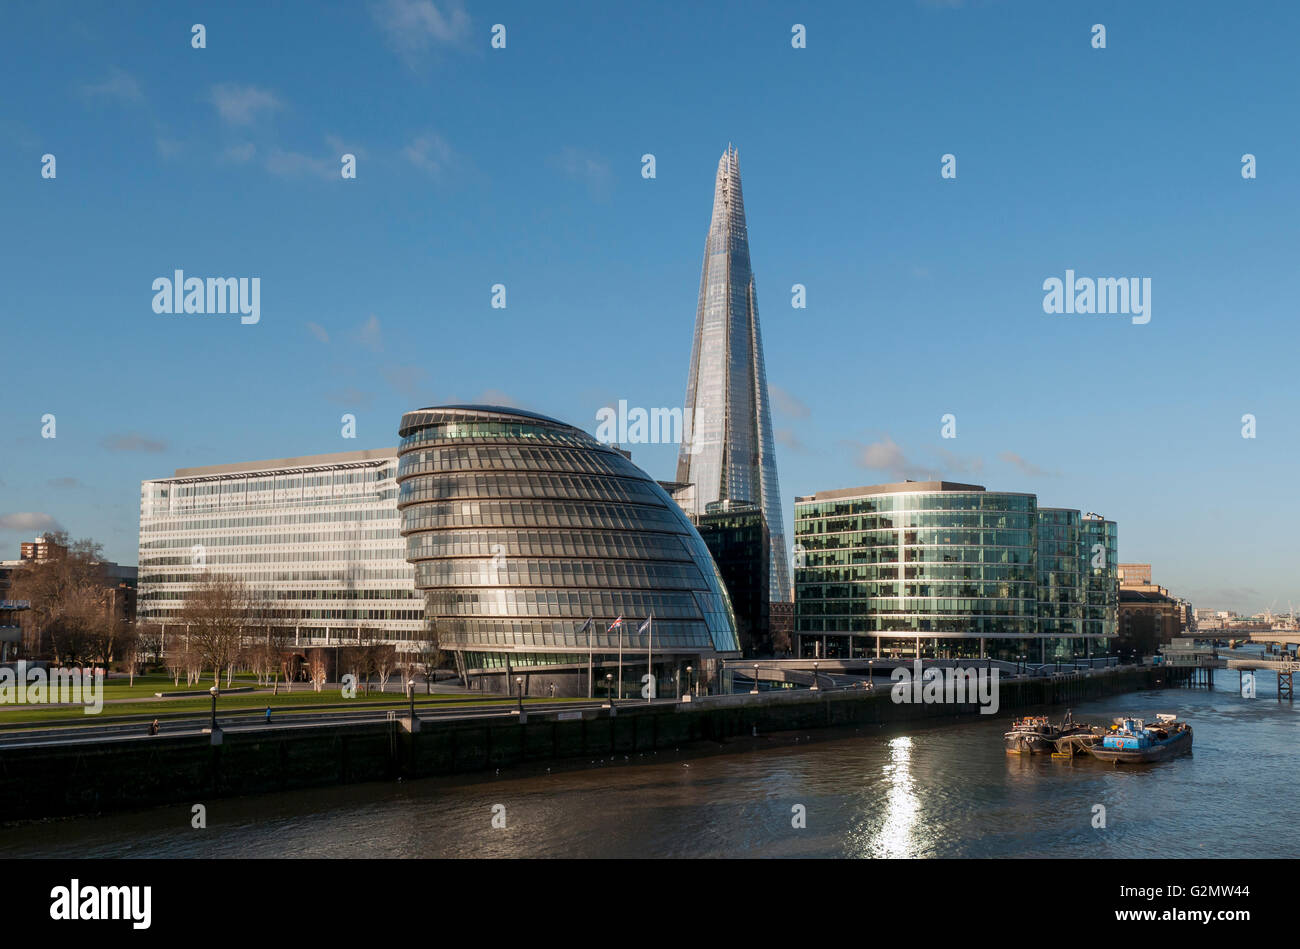 London City Hall, Greater London Authority or GLA Building, and The Shard skyscraper, Southwark, London, London - Stock Image